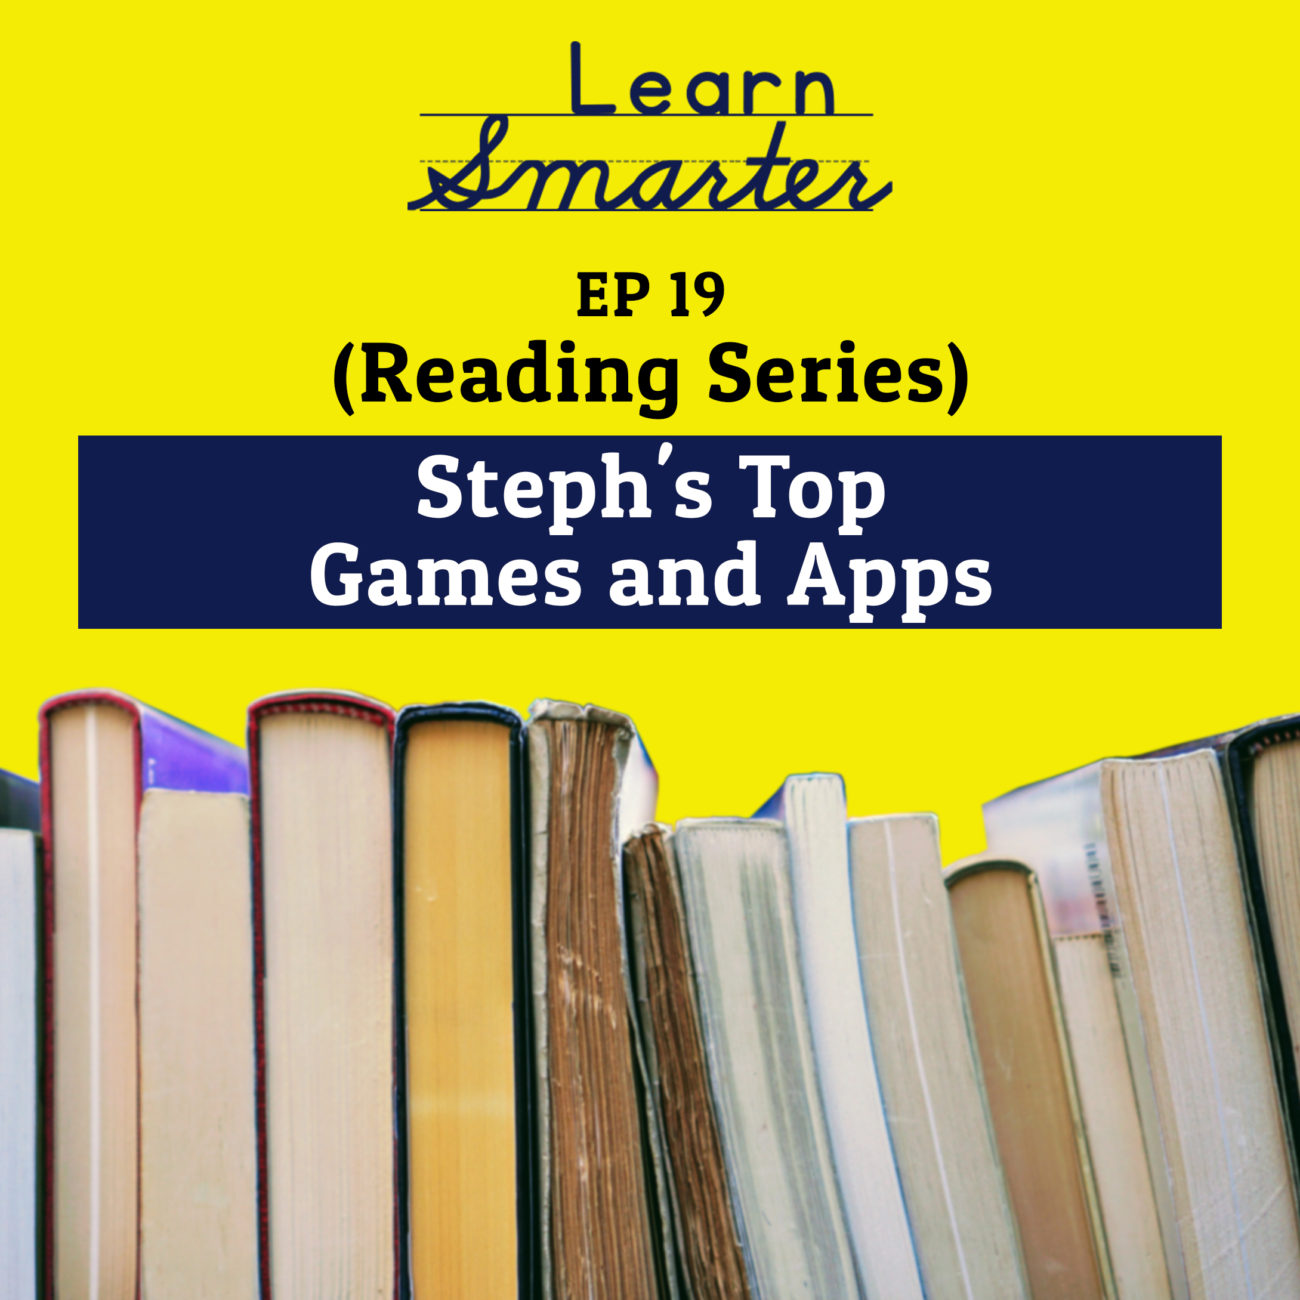 19: Steph's Top Games and Apps